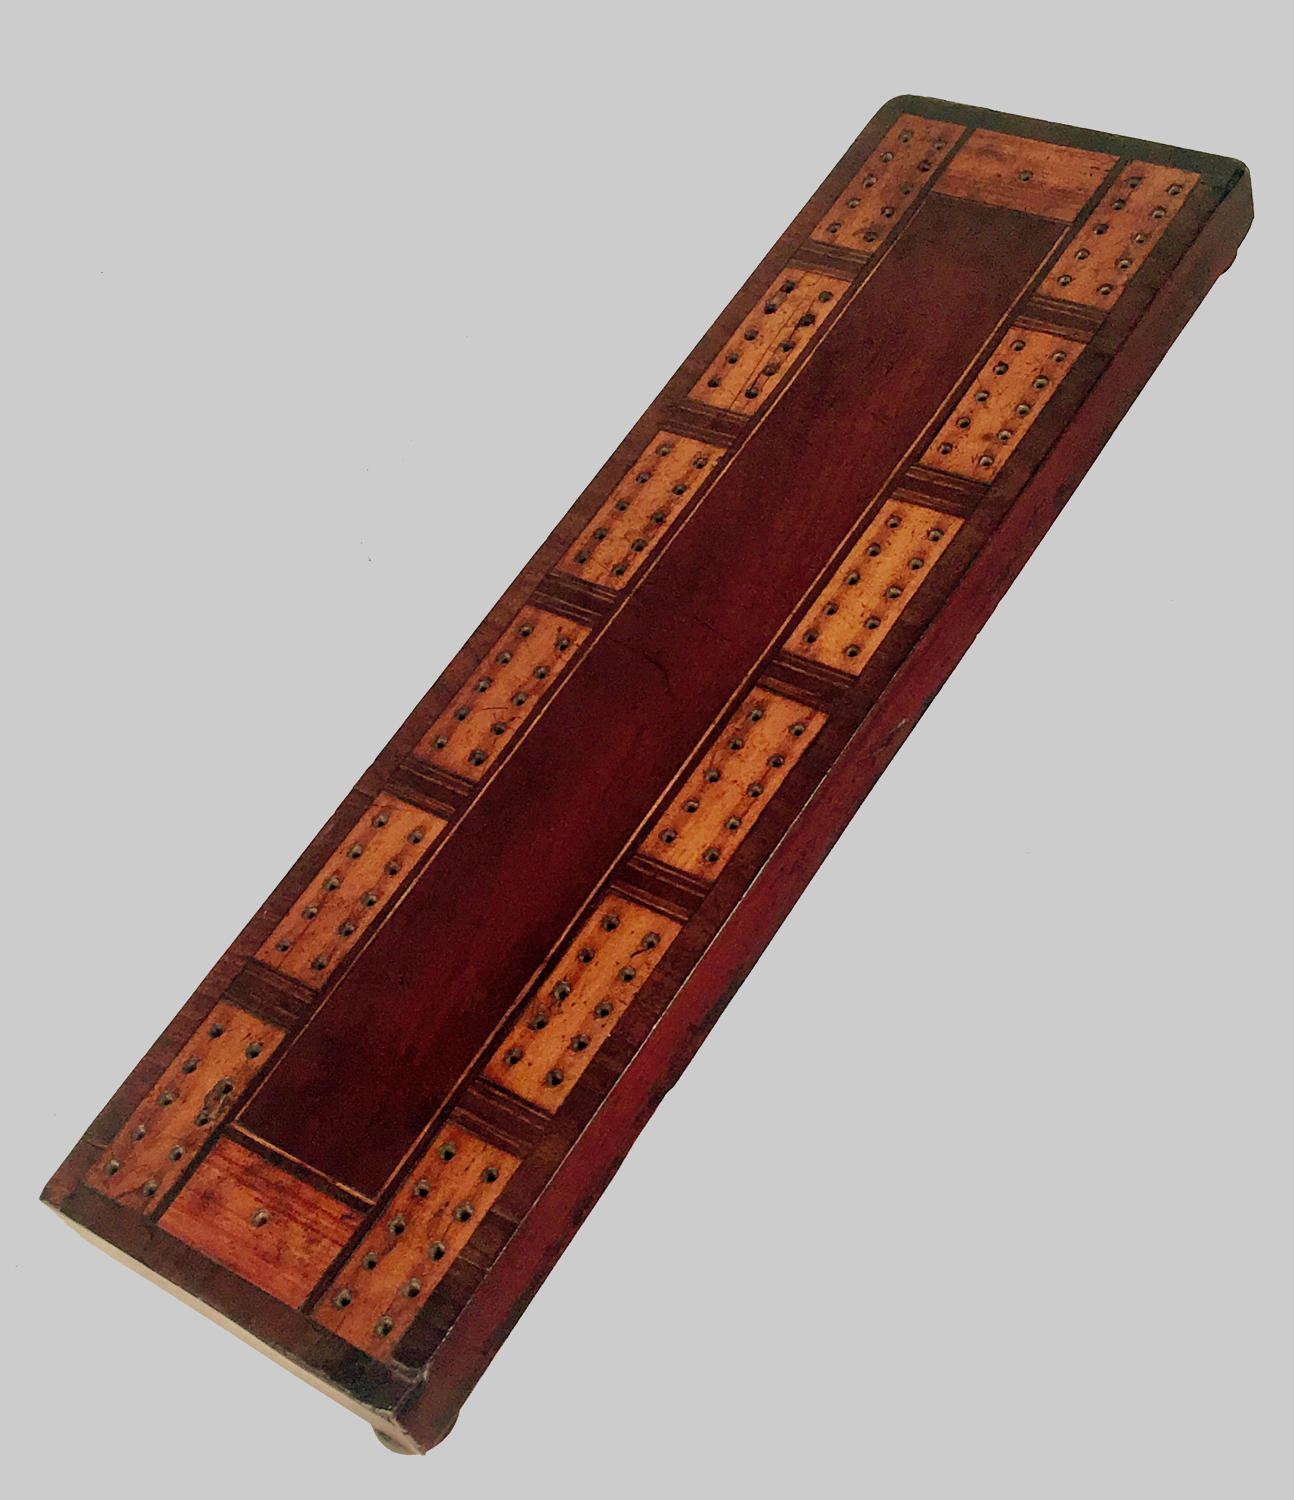 19th century cribbage board of exceptional size